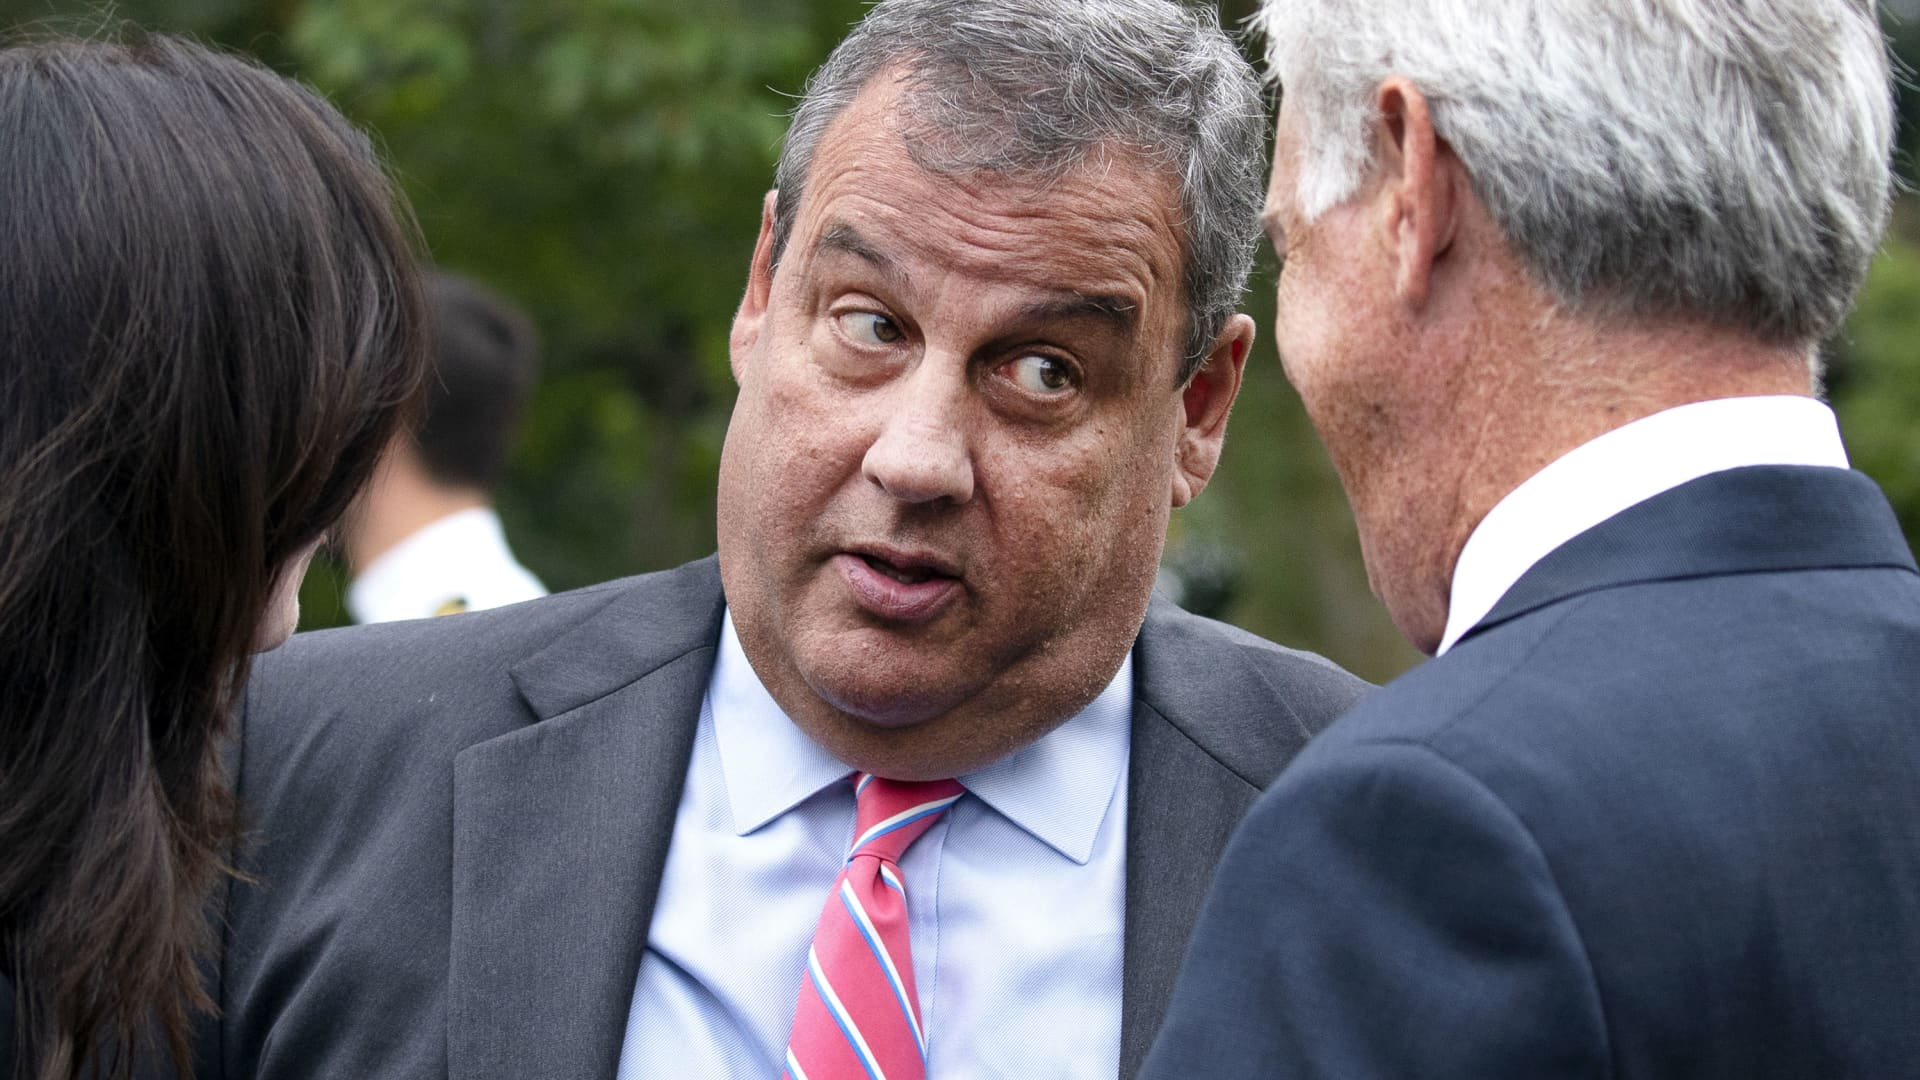 Chris Christie, former Governor of New Jersey, center, speaks with attendees following the announcement of U.S. President Donald Trump's nominee for associate justice of the U.S. Supreme Court during a ceremony in the Rose Garden of the White House in Washington, D.C., on Saturday, Sept. 26, 2020.